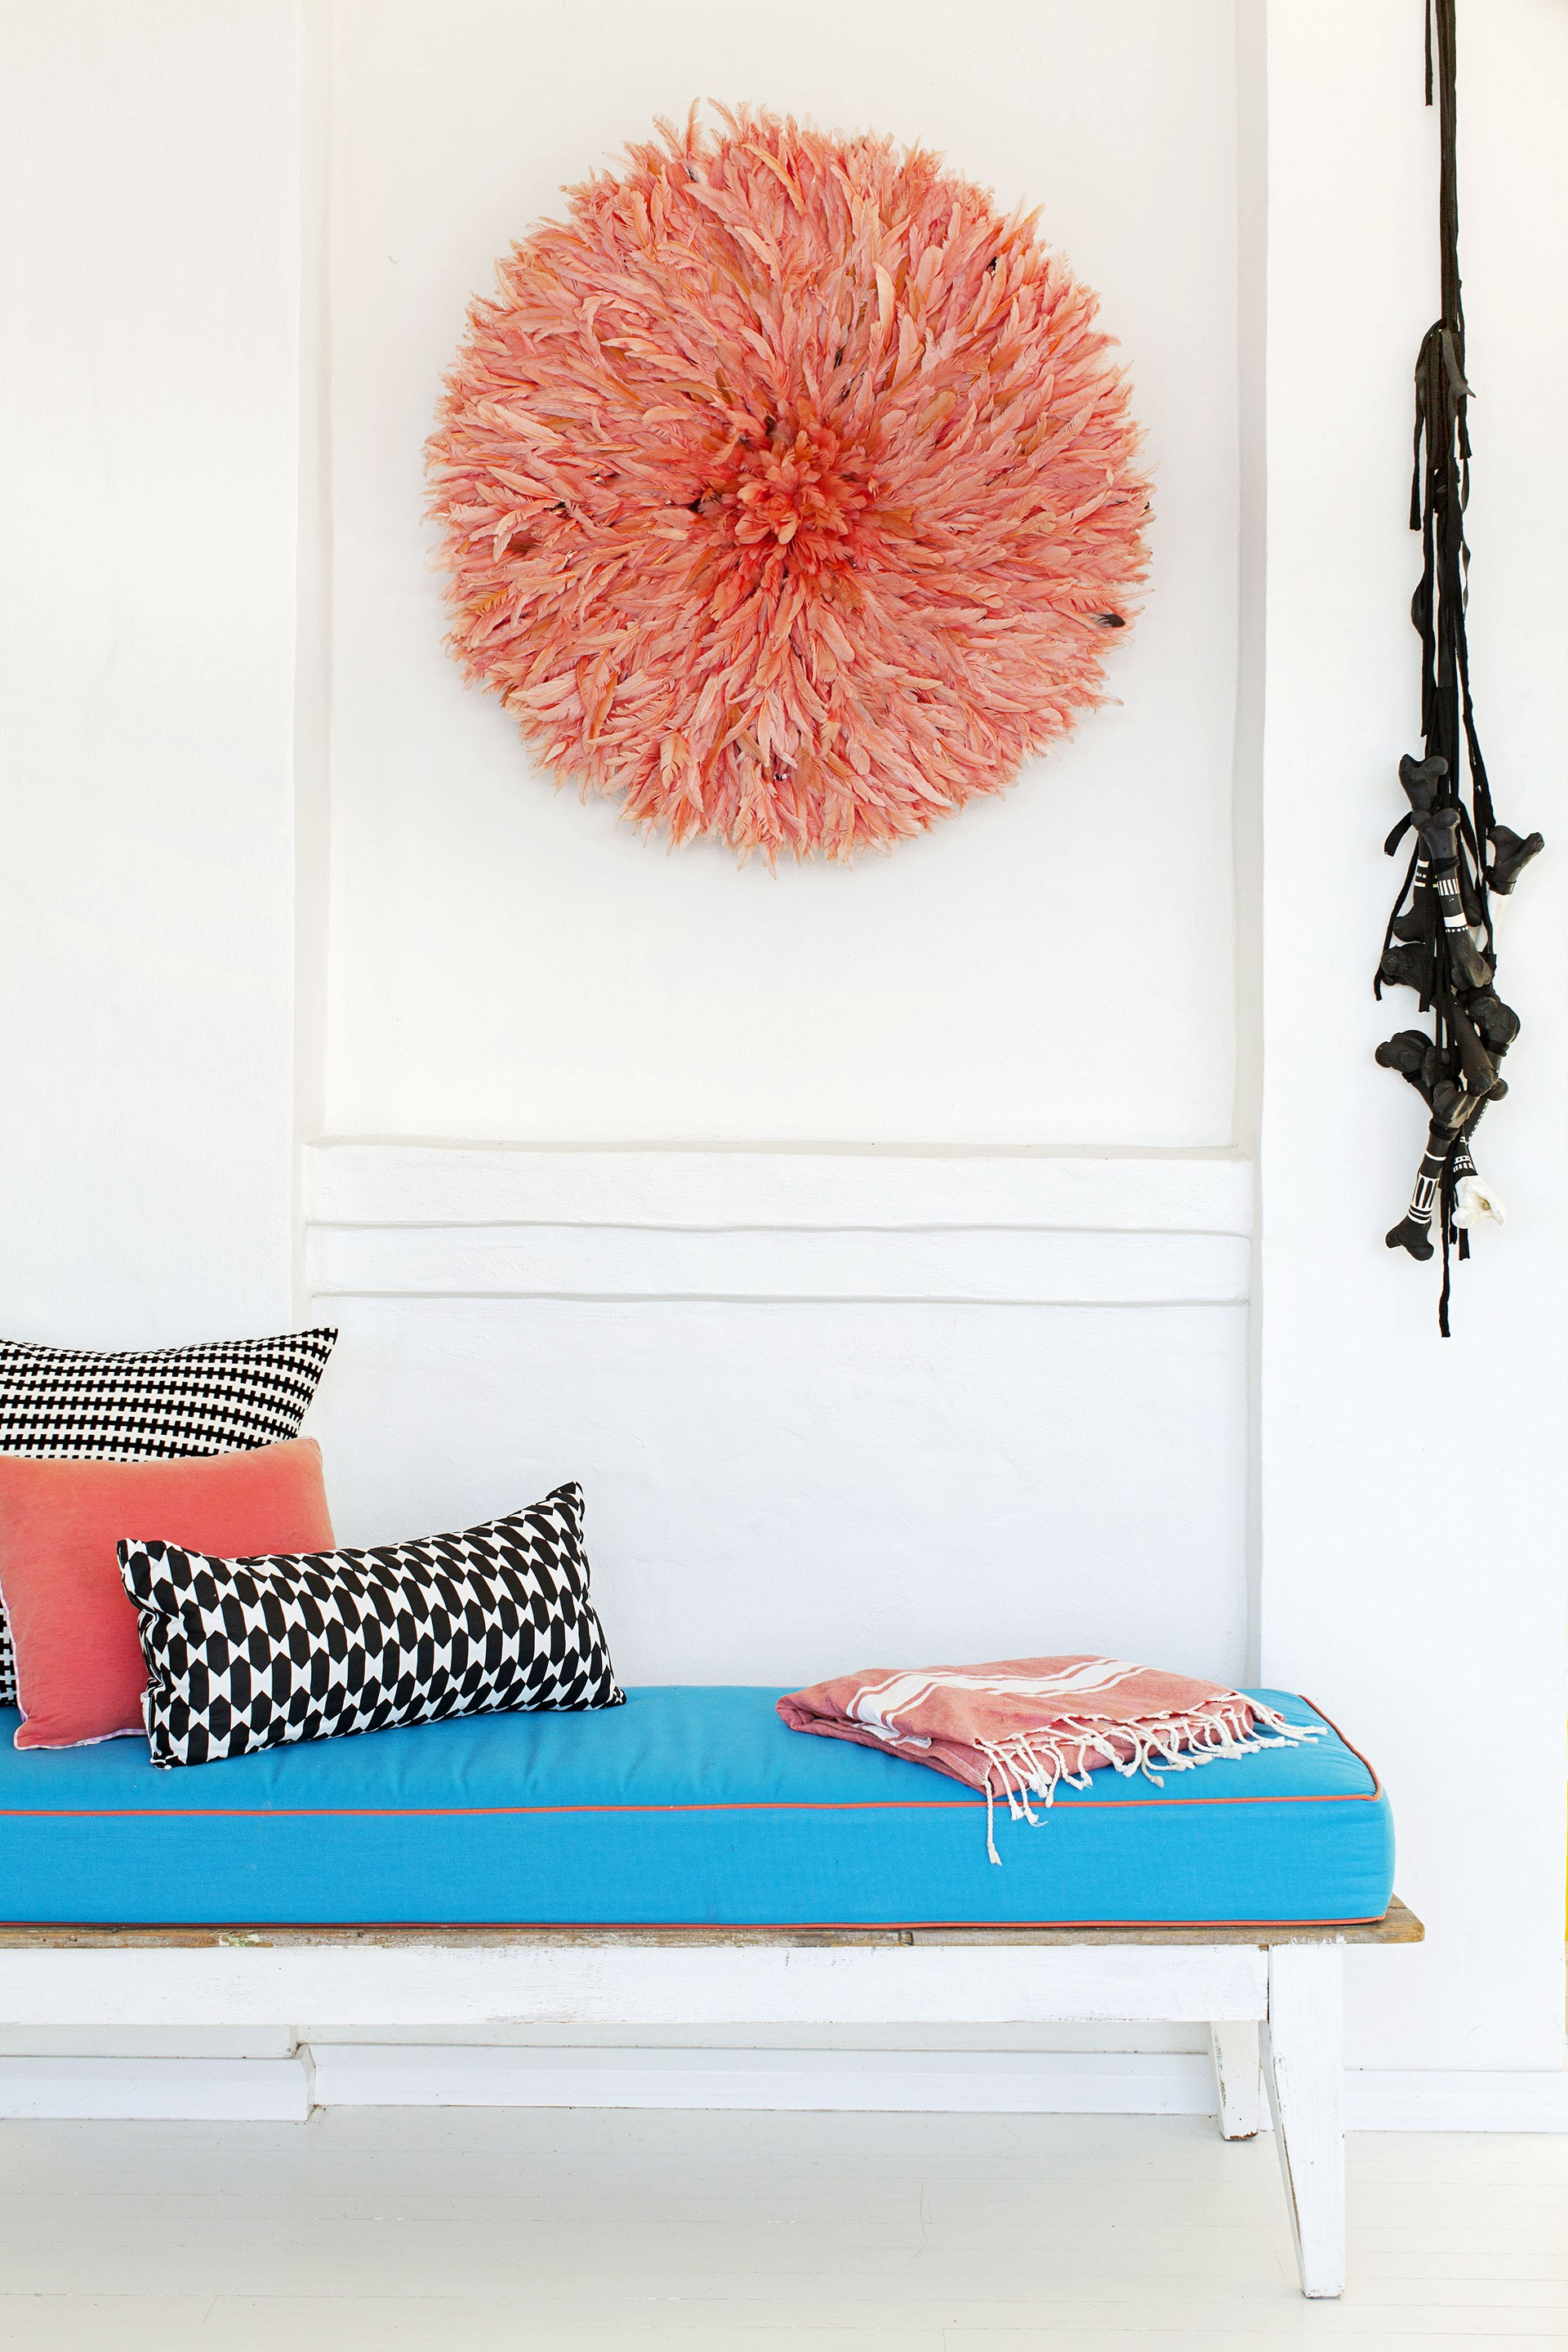 """Vibrant watermelon-pink adds warmth to this [Moroccan-inspired beach house](http://www.homestolove.com.au/gallery-heidis-moroccan-inspired-beach-house-1830 target=""""_blank""""). Photo: Françoise Baudet"""